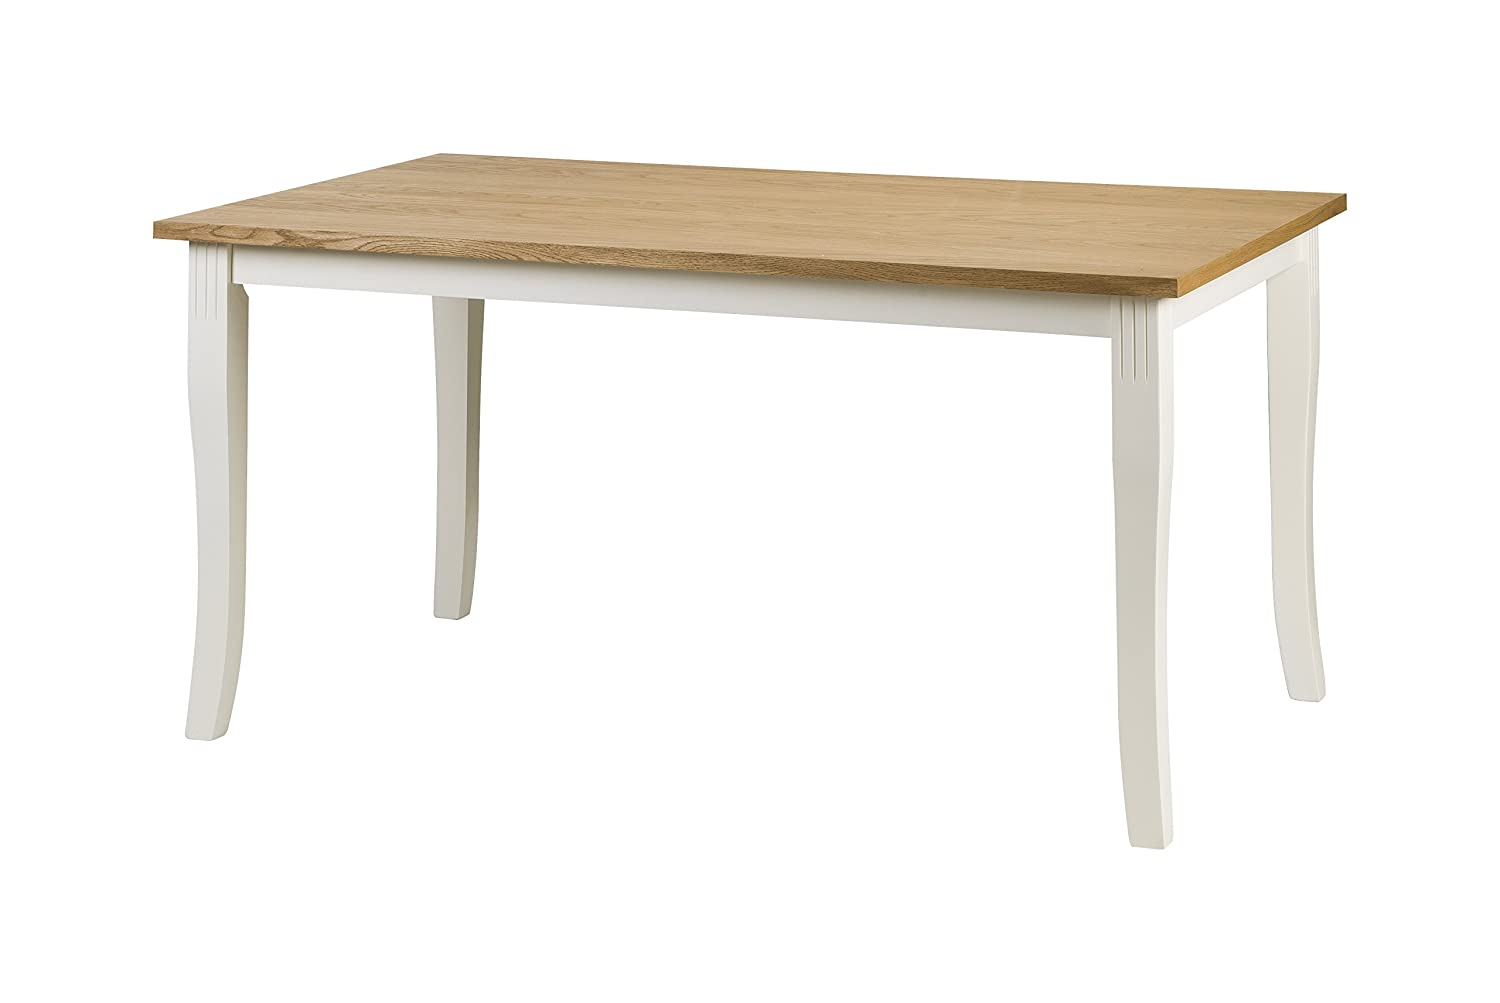 Julian Bowen Davenport Dining Table, Wood, Ivory/Light Oak DAV001